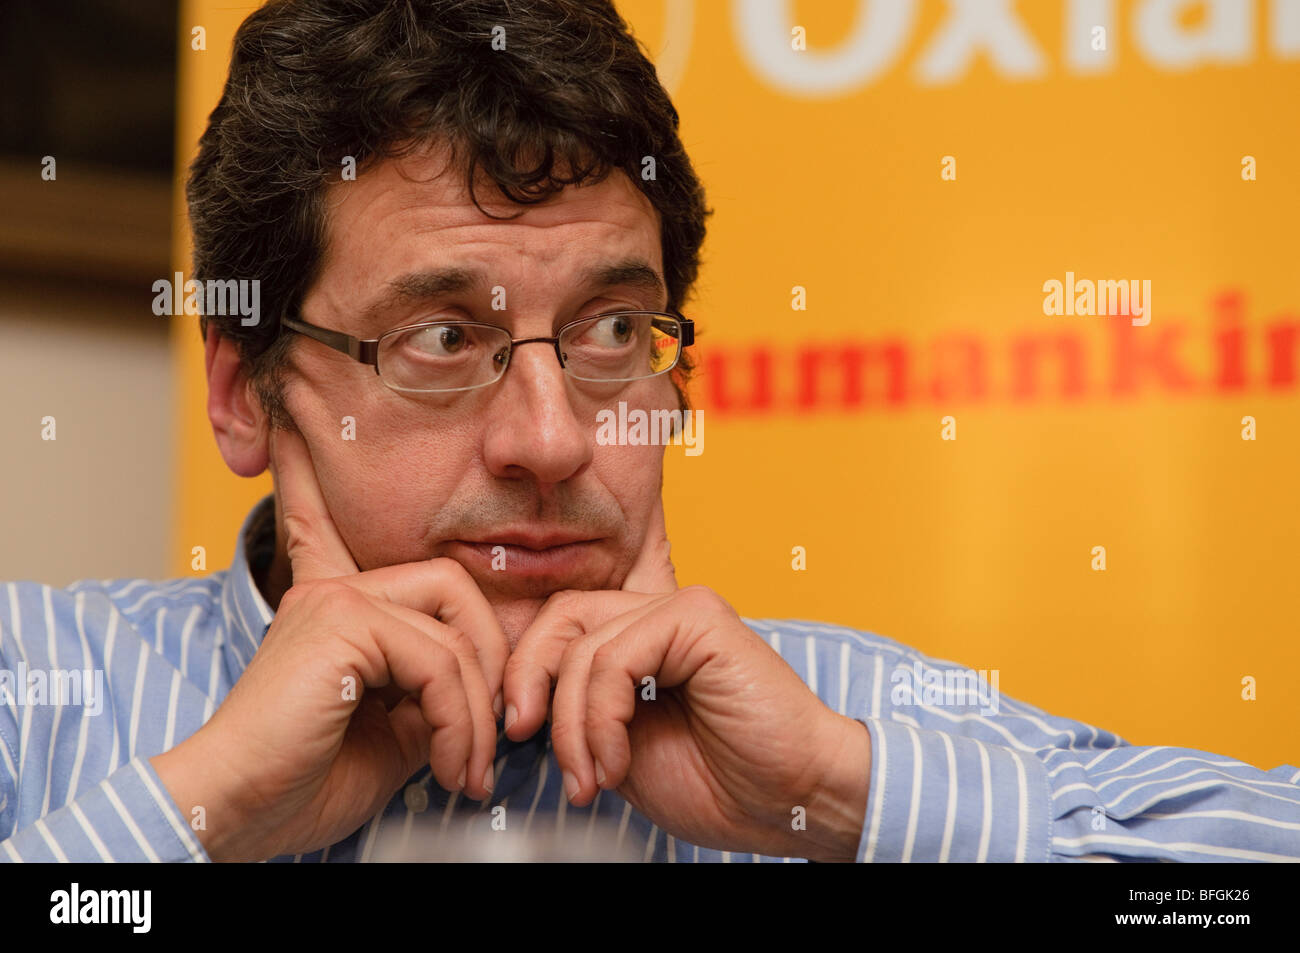 Environmental campaigner and lobbyist GEORGE MONBIOT addressing Oxfam climate change hearing, UK - Stock Image